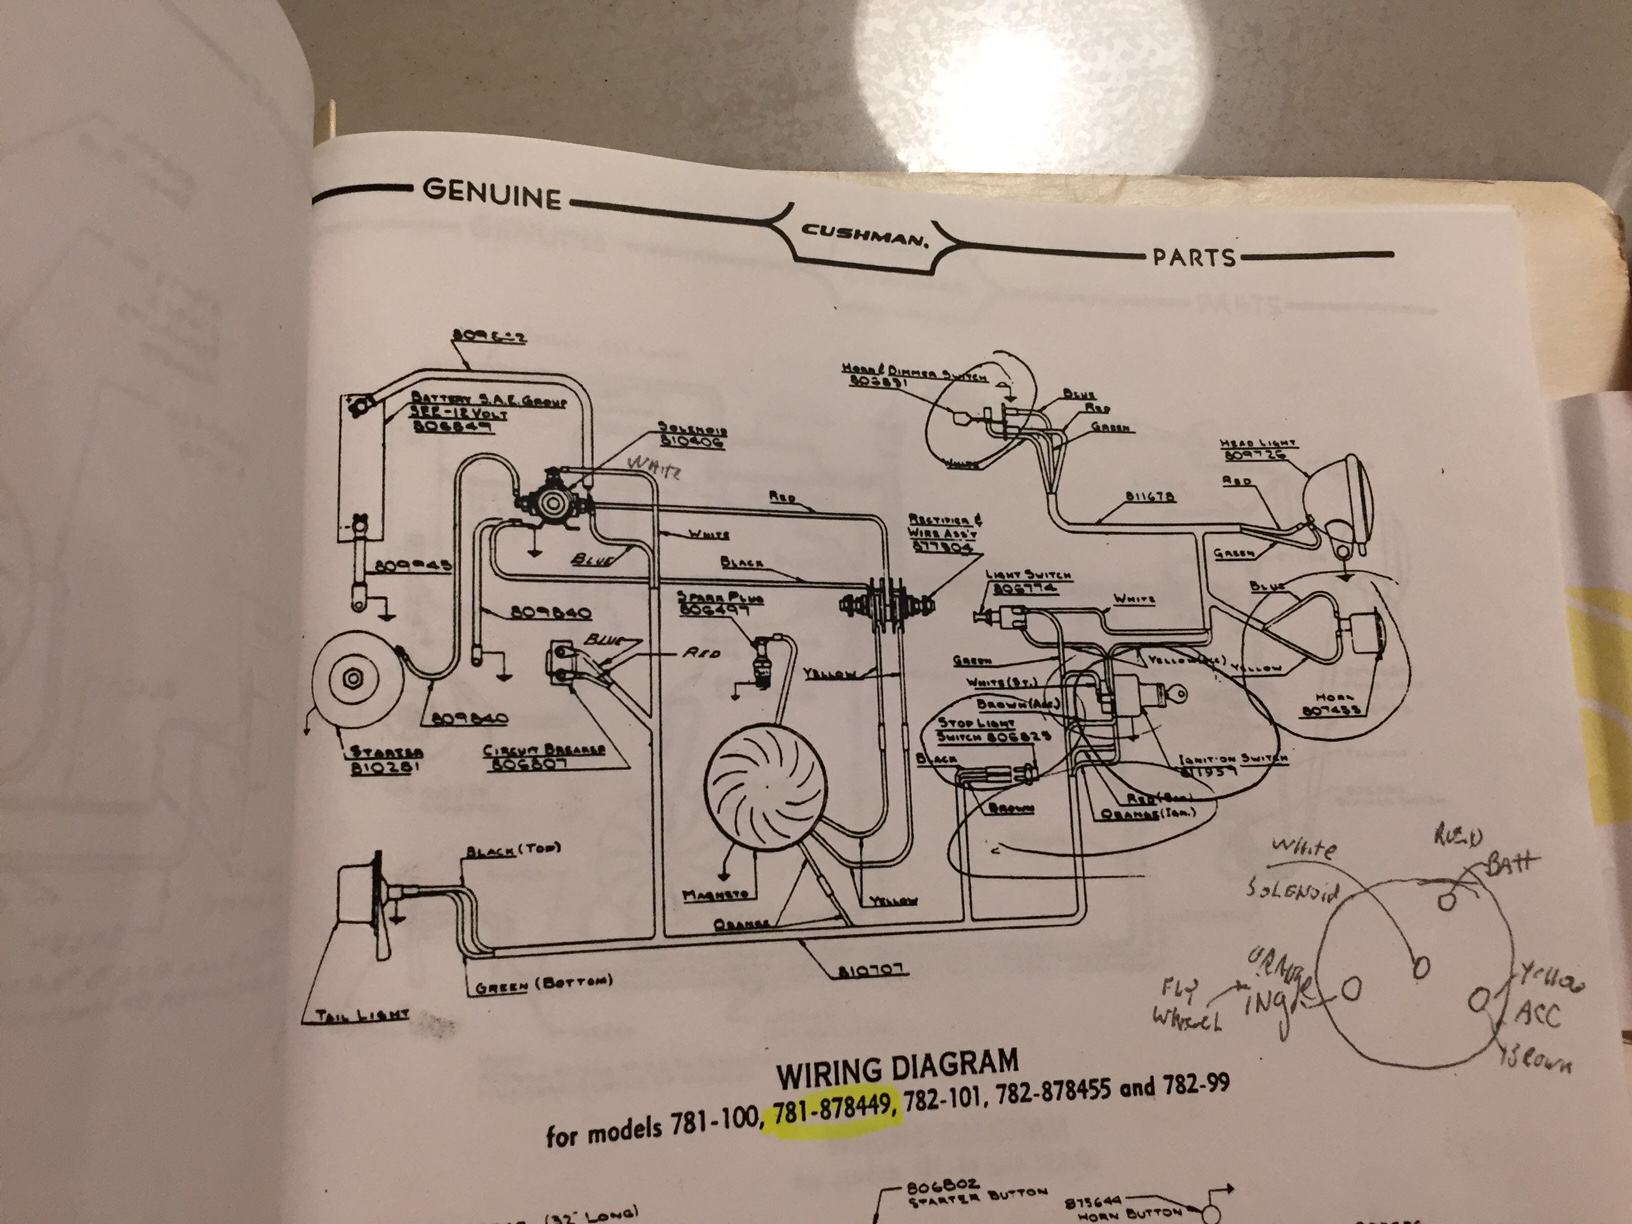 hight resolution of cushman truckster wiring diagram wiring diagram schematics western golf cart 36 volt wiring diagram cushman 36 volt wiring diagram